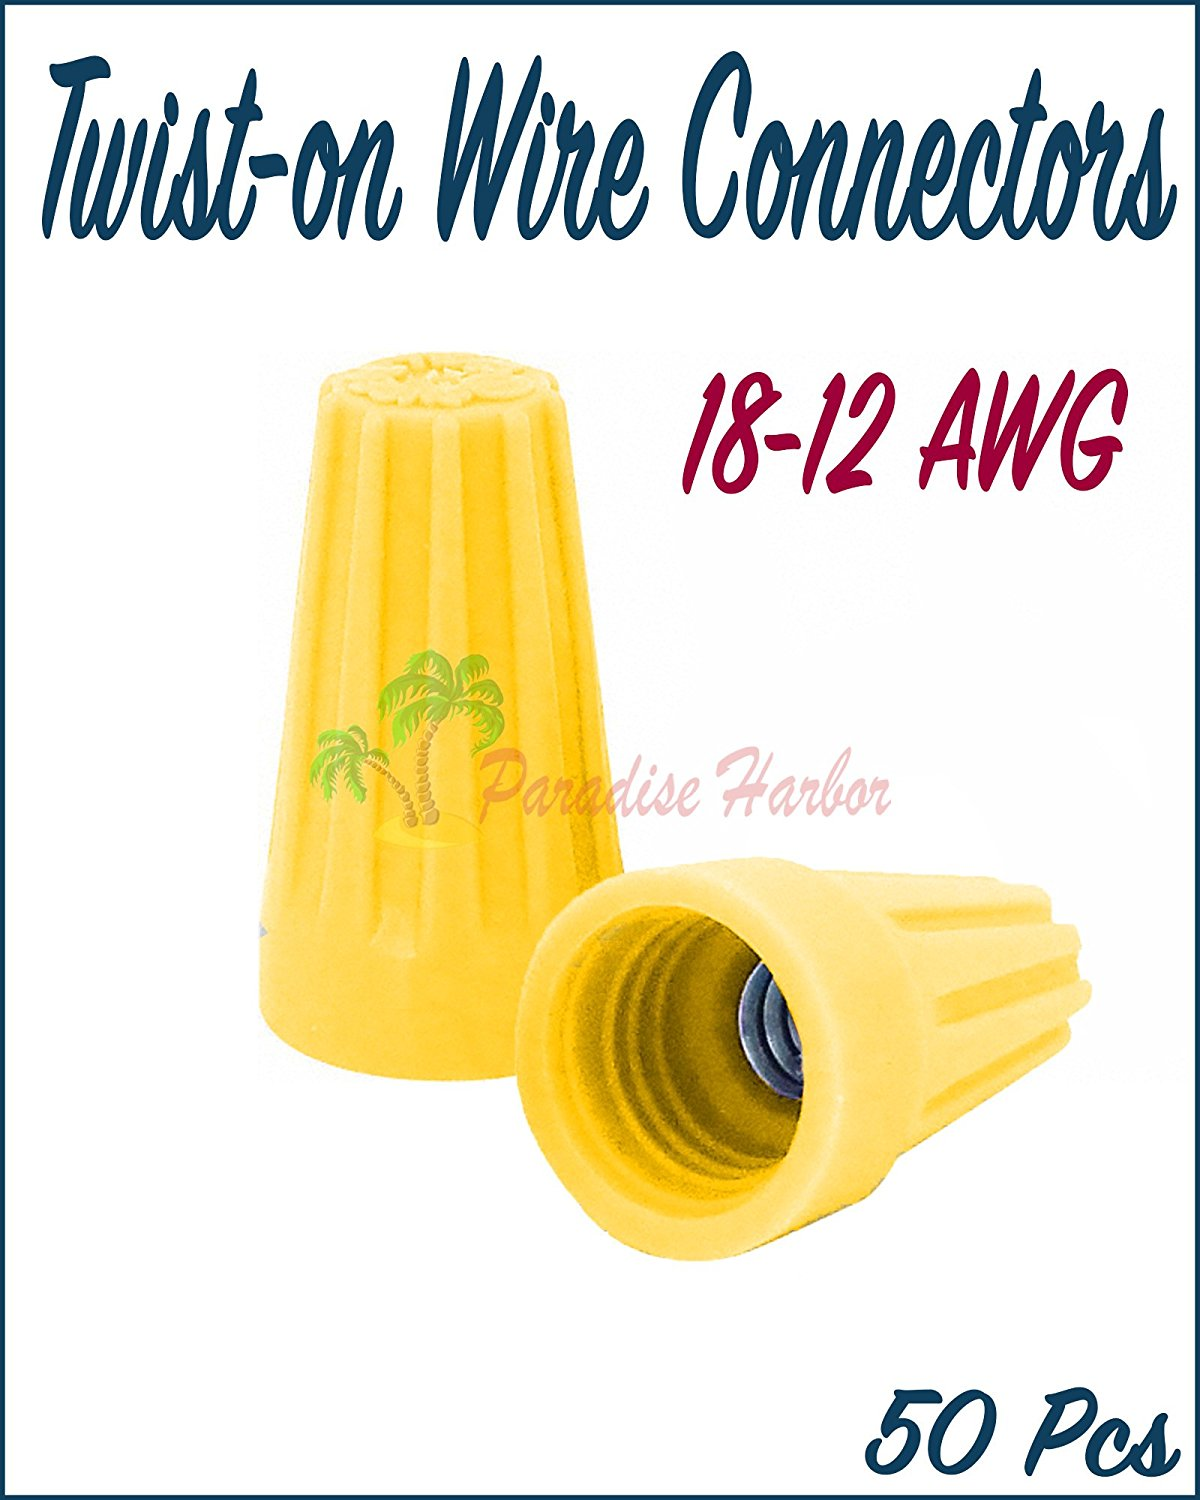 Paradise Harbor 50 Pcs Yellow Twist-On Wire GARD Connector Twist Wire Connector 18-12 AWG